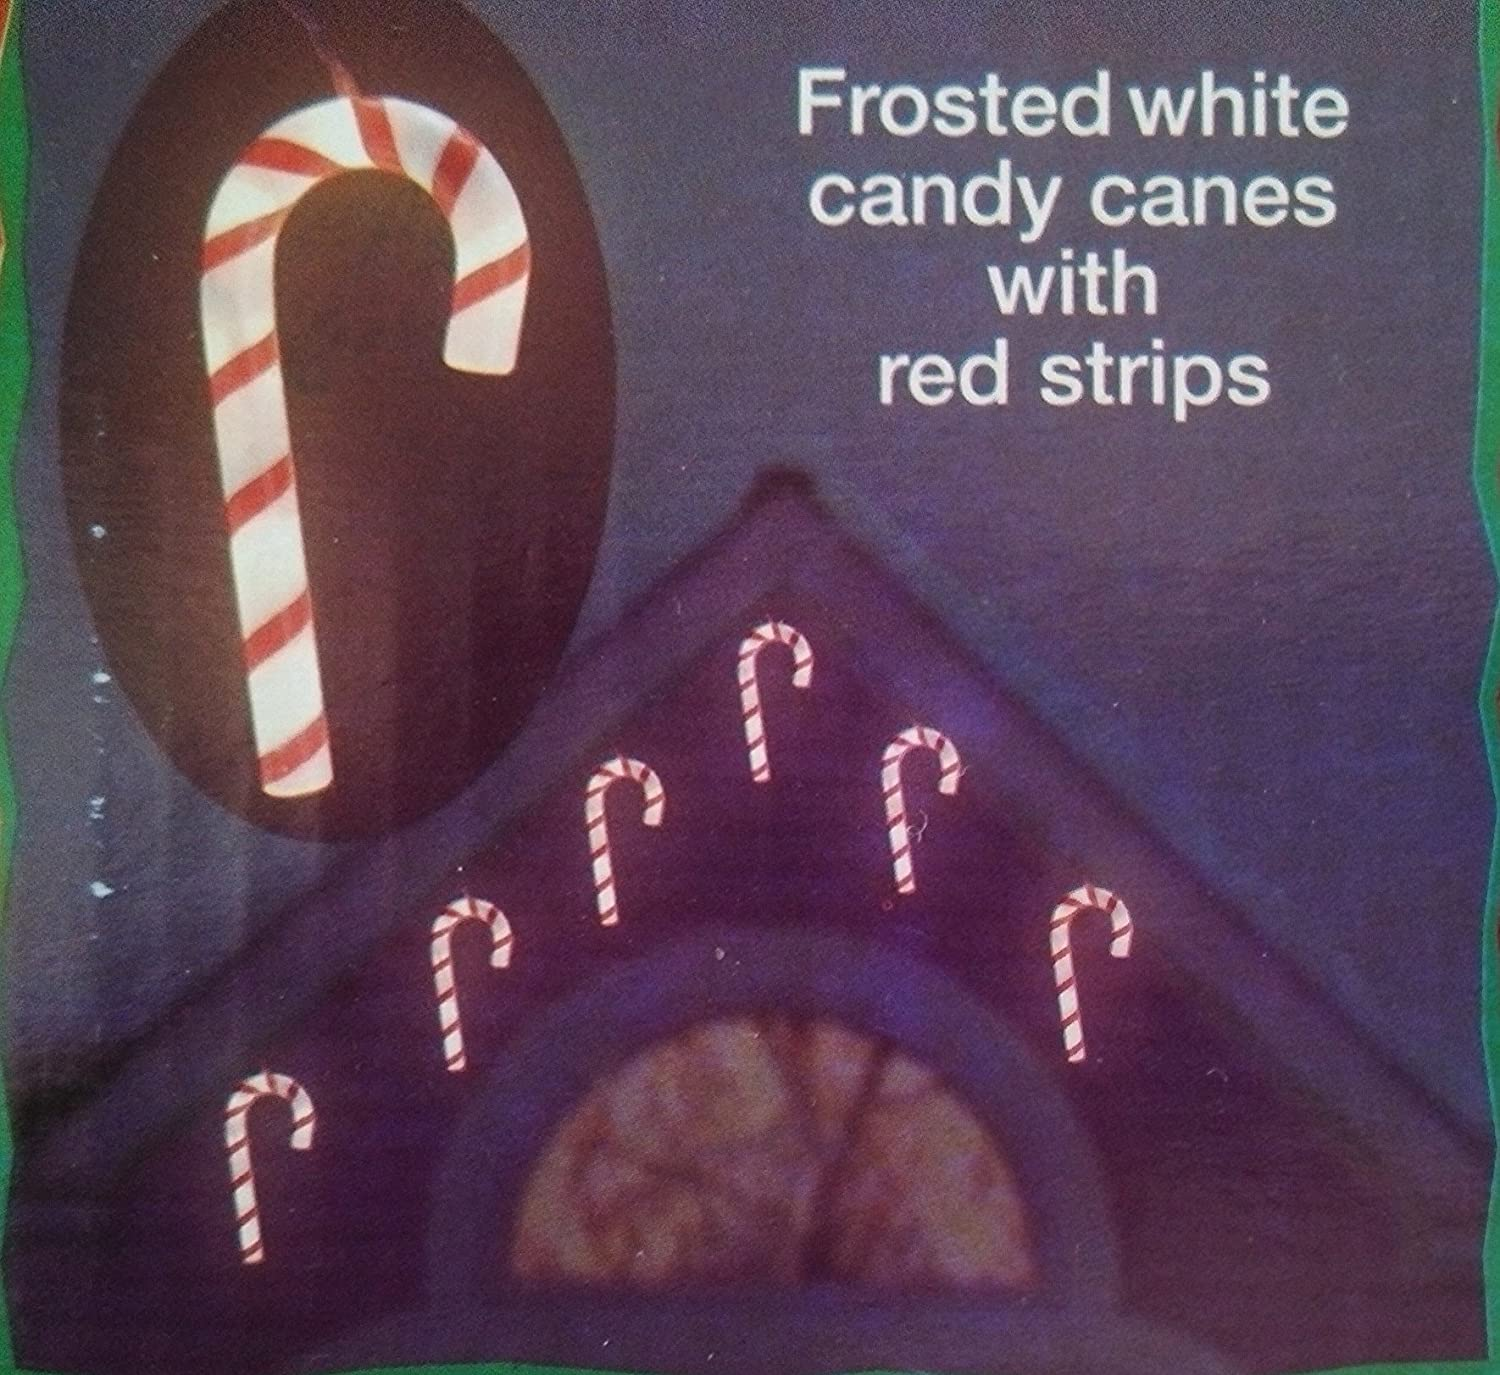 Peppermint christmas string lights christmas wikii christmas frosted candy cane string lights white w red stripes 7 candy canes per string each contains 5 xmas style bulbs 35 bulbs total candy canes mozeypictures Gallery